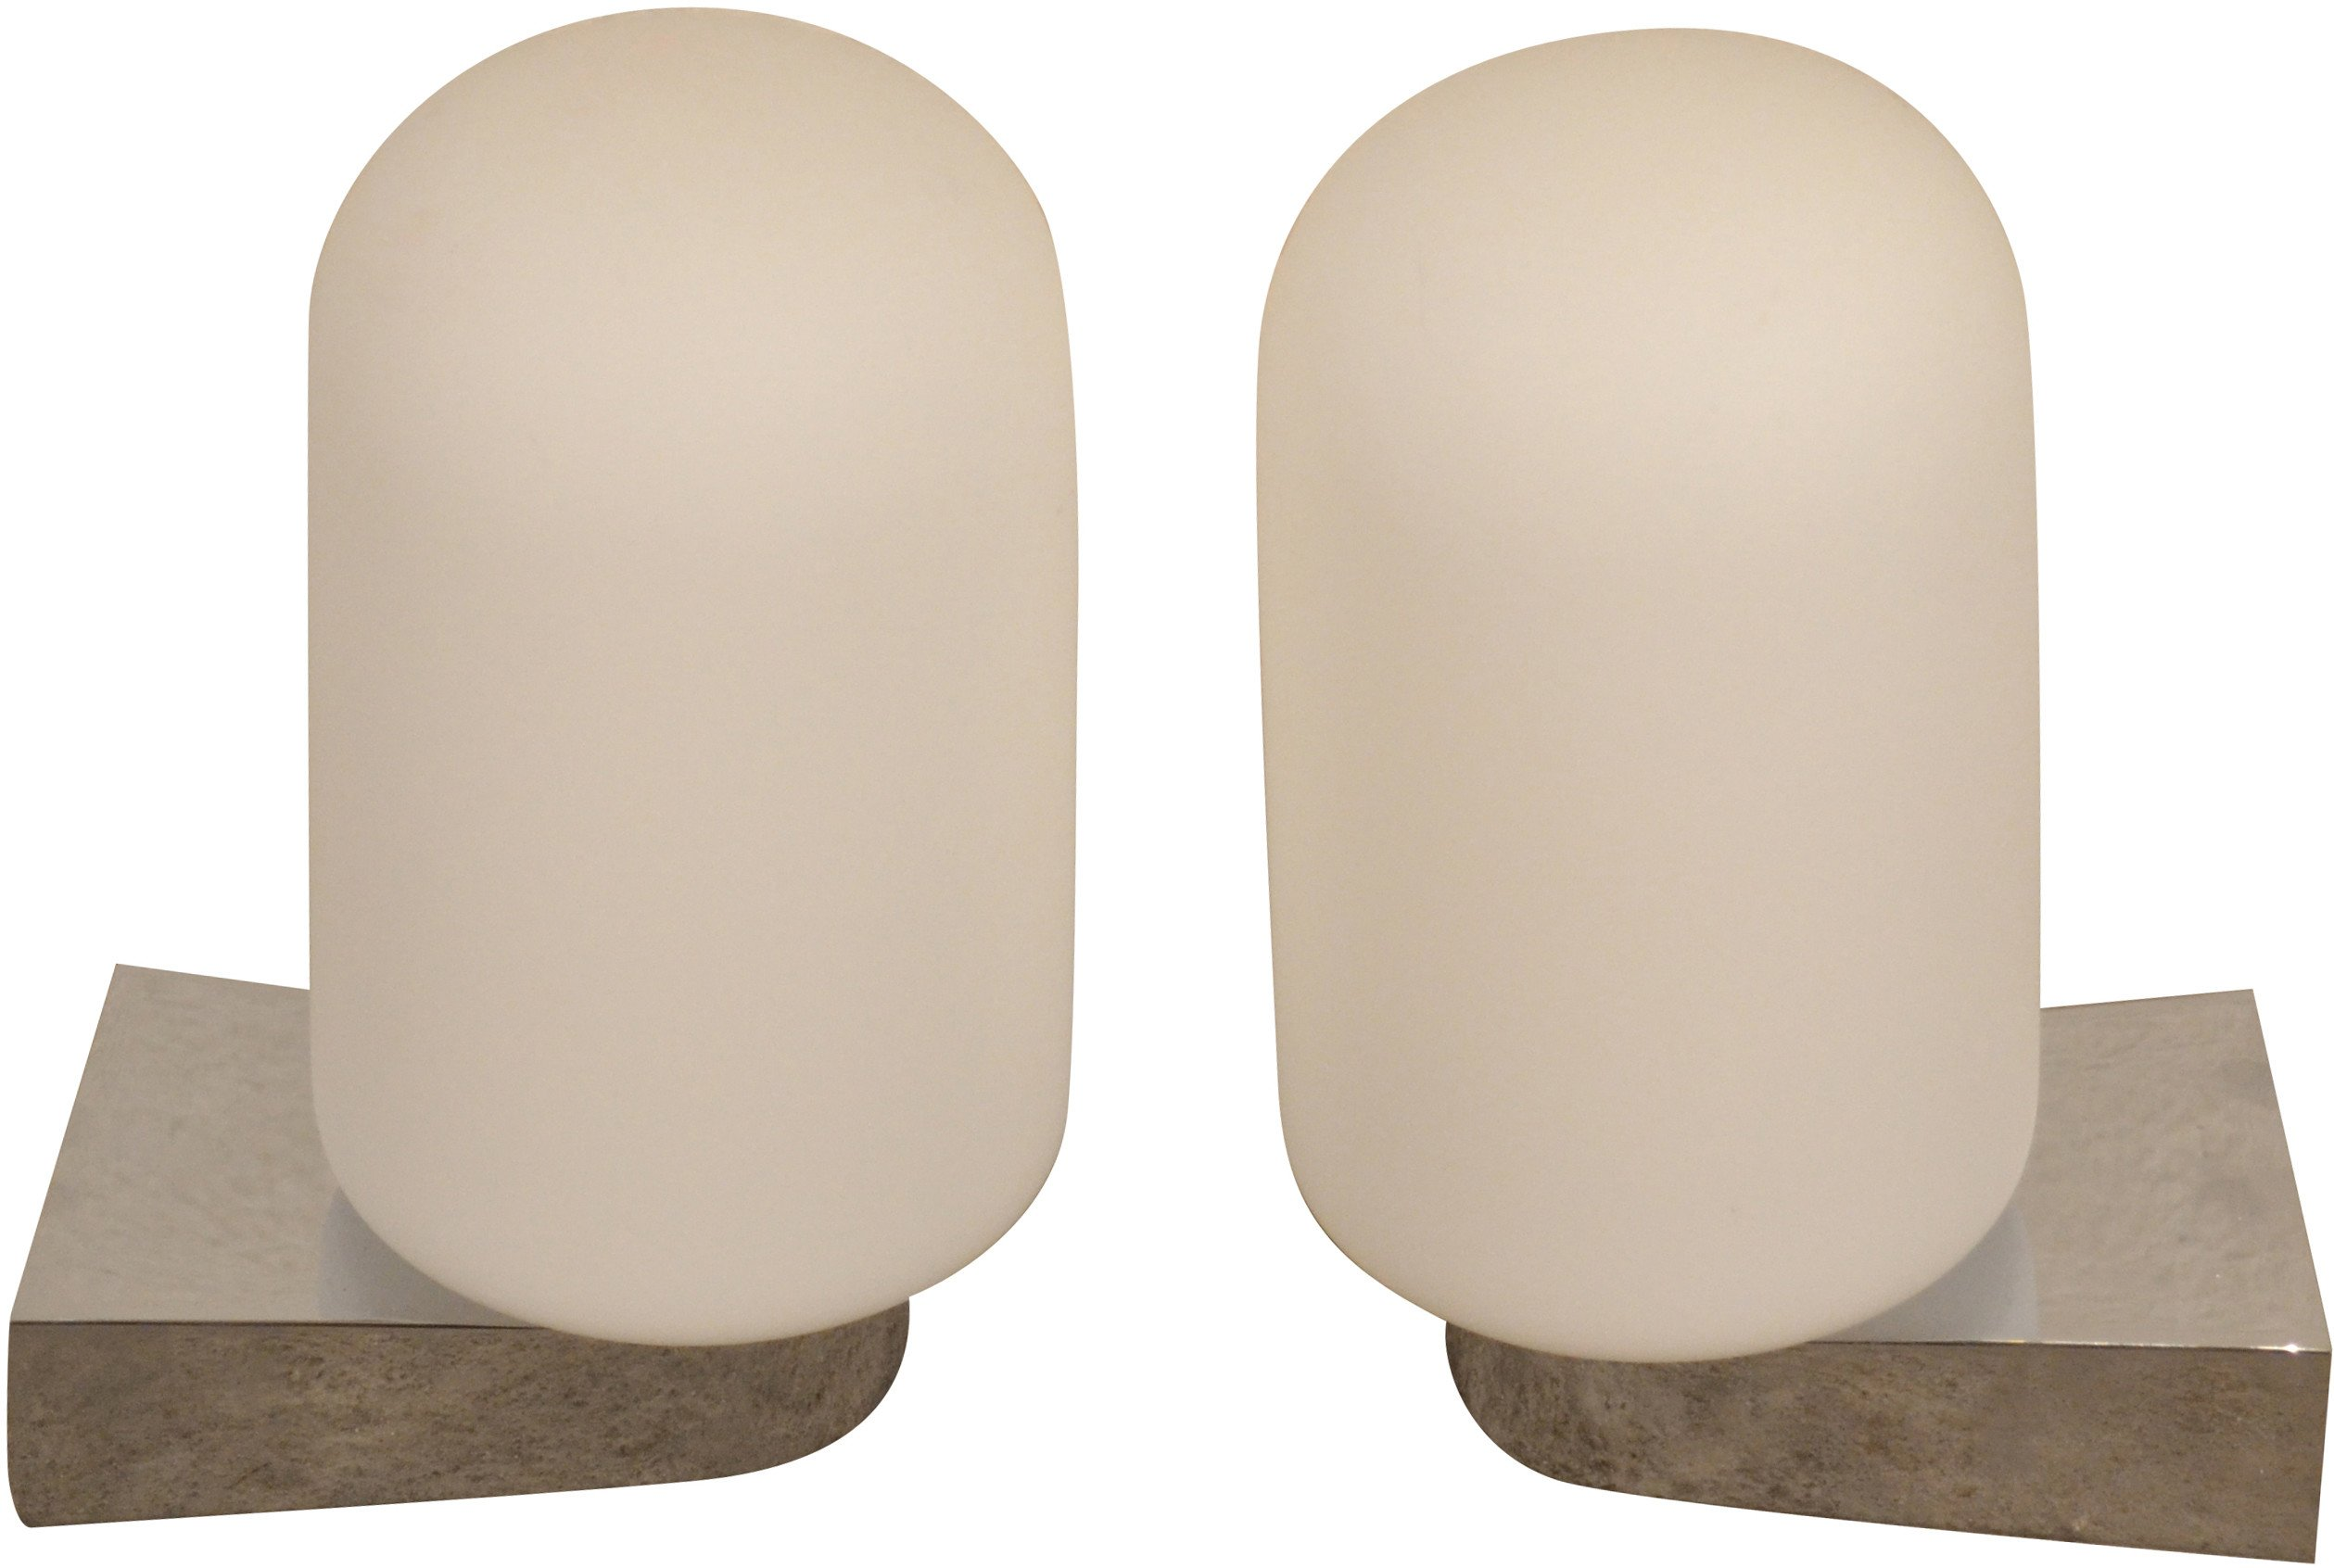 Pair of Wall Lamps, Keuco, 1970s